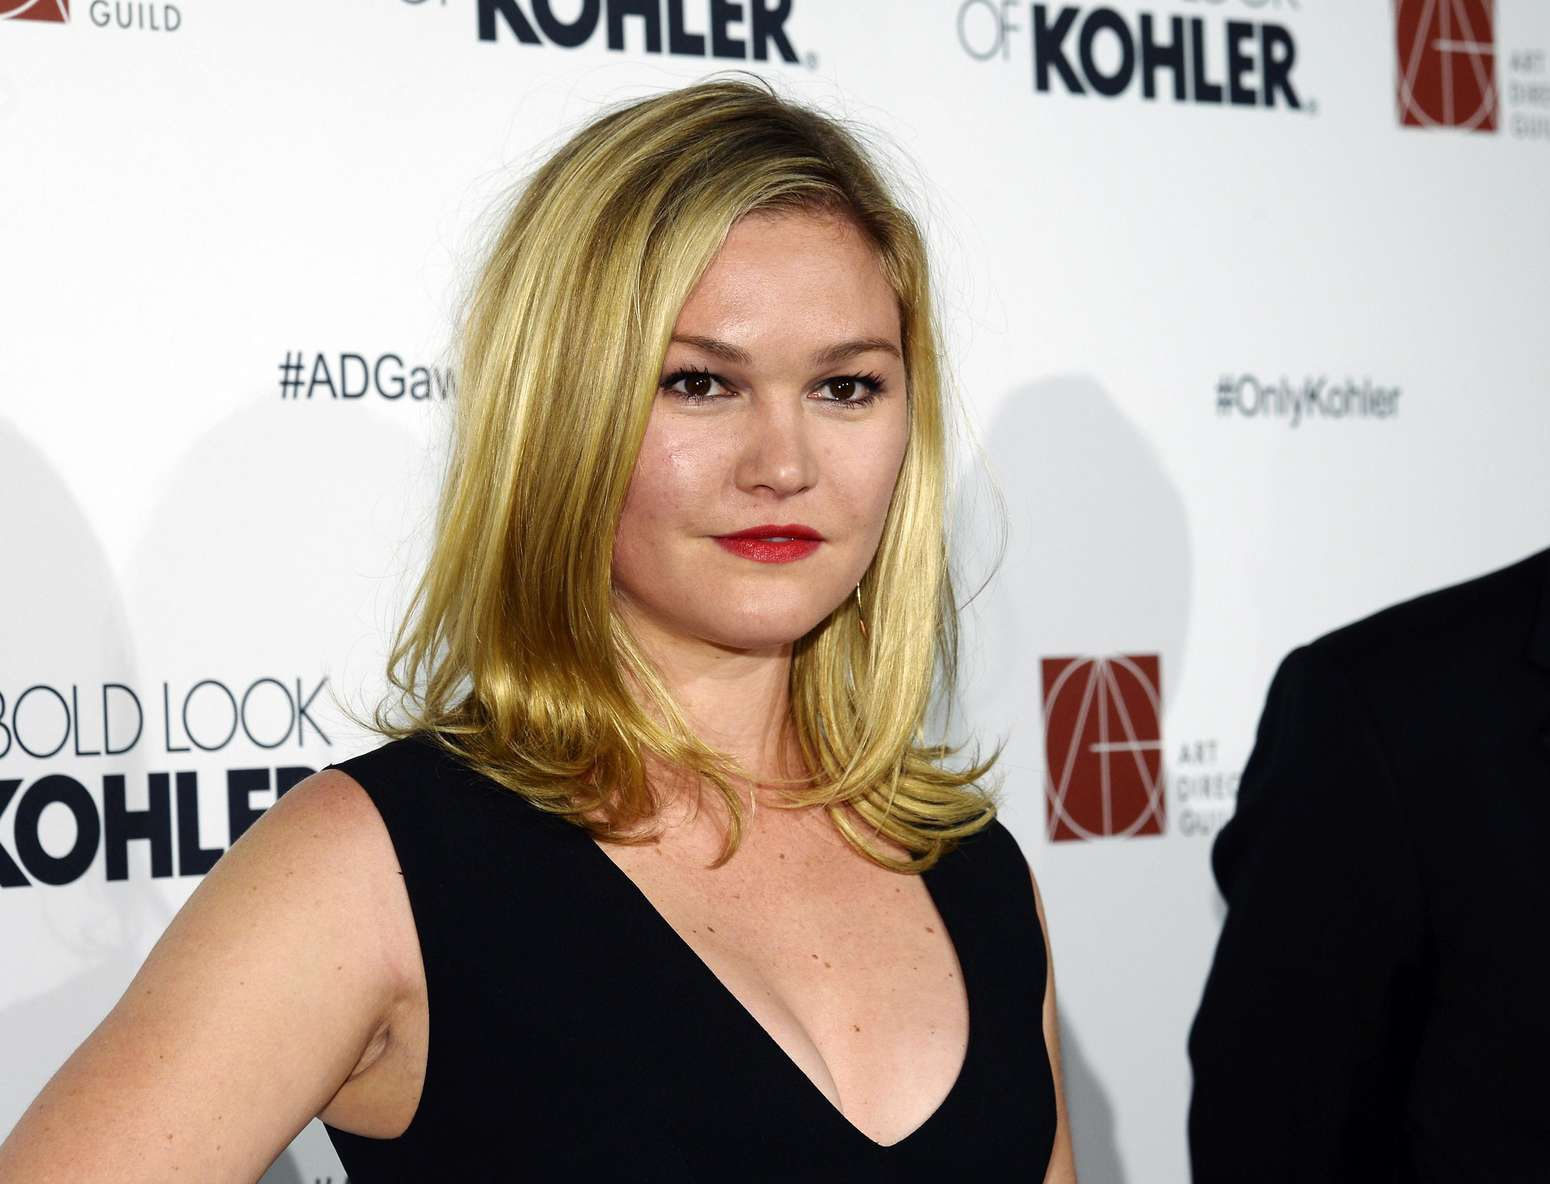 Julia Stiles 2014 : Julia Stiles 2014 ADG Excellence in Production Design Awards -07